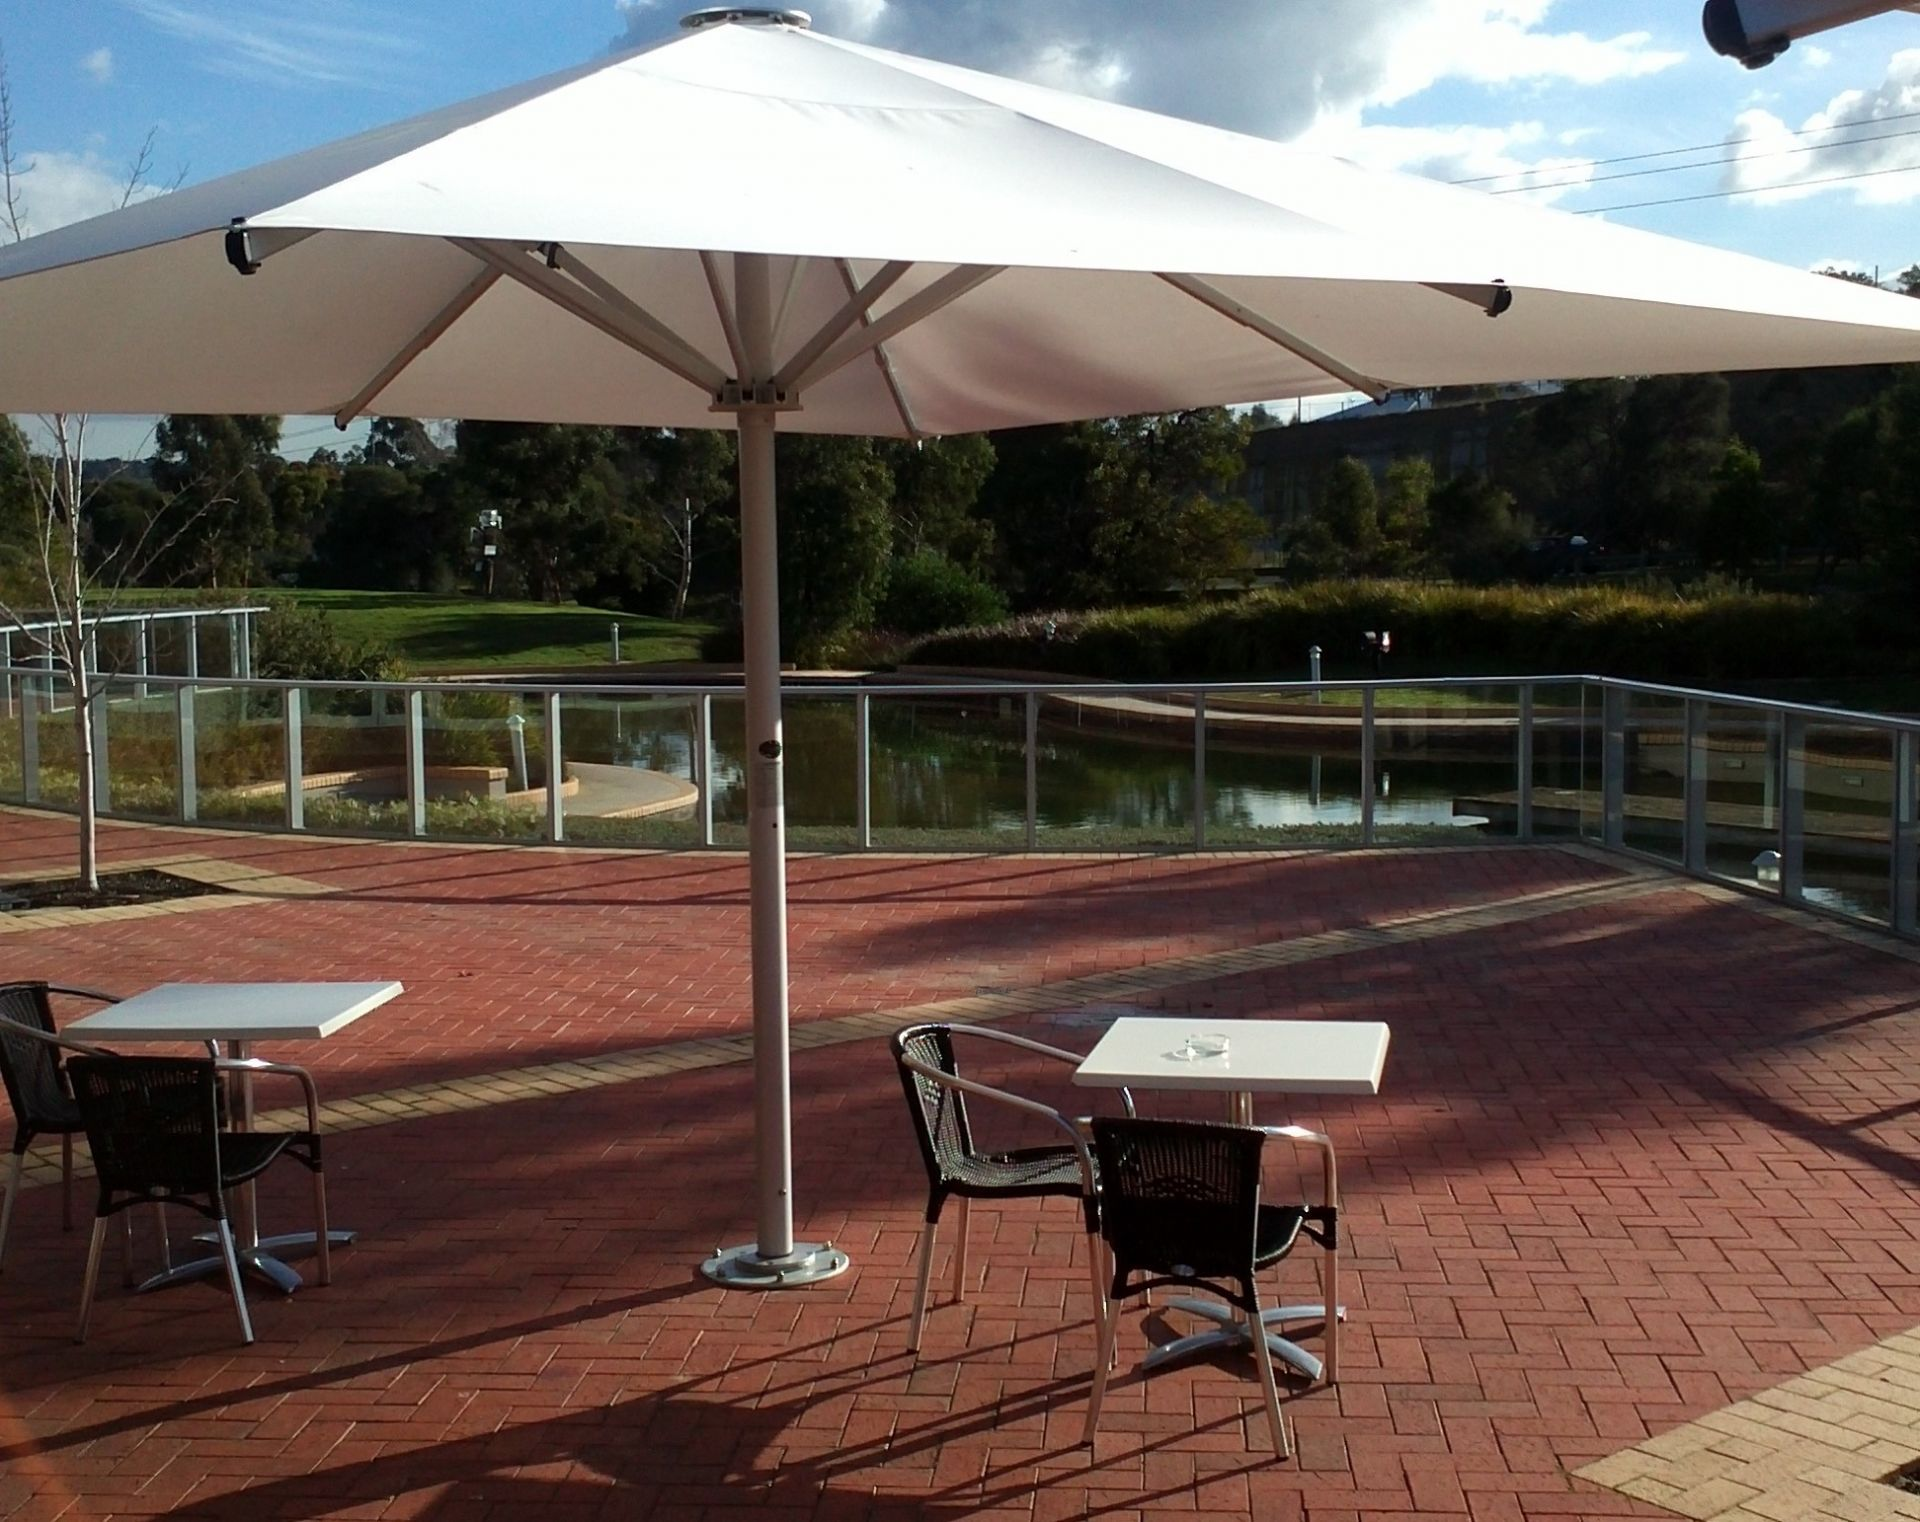 Popular Restaurant in Eastern Suburbs - Great location & priced to sell